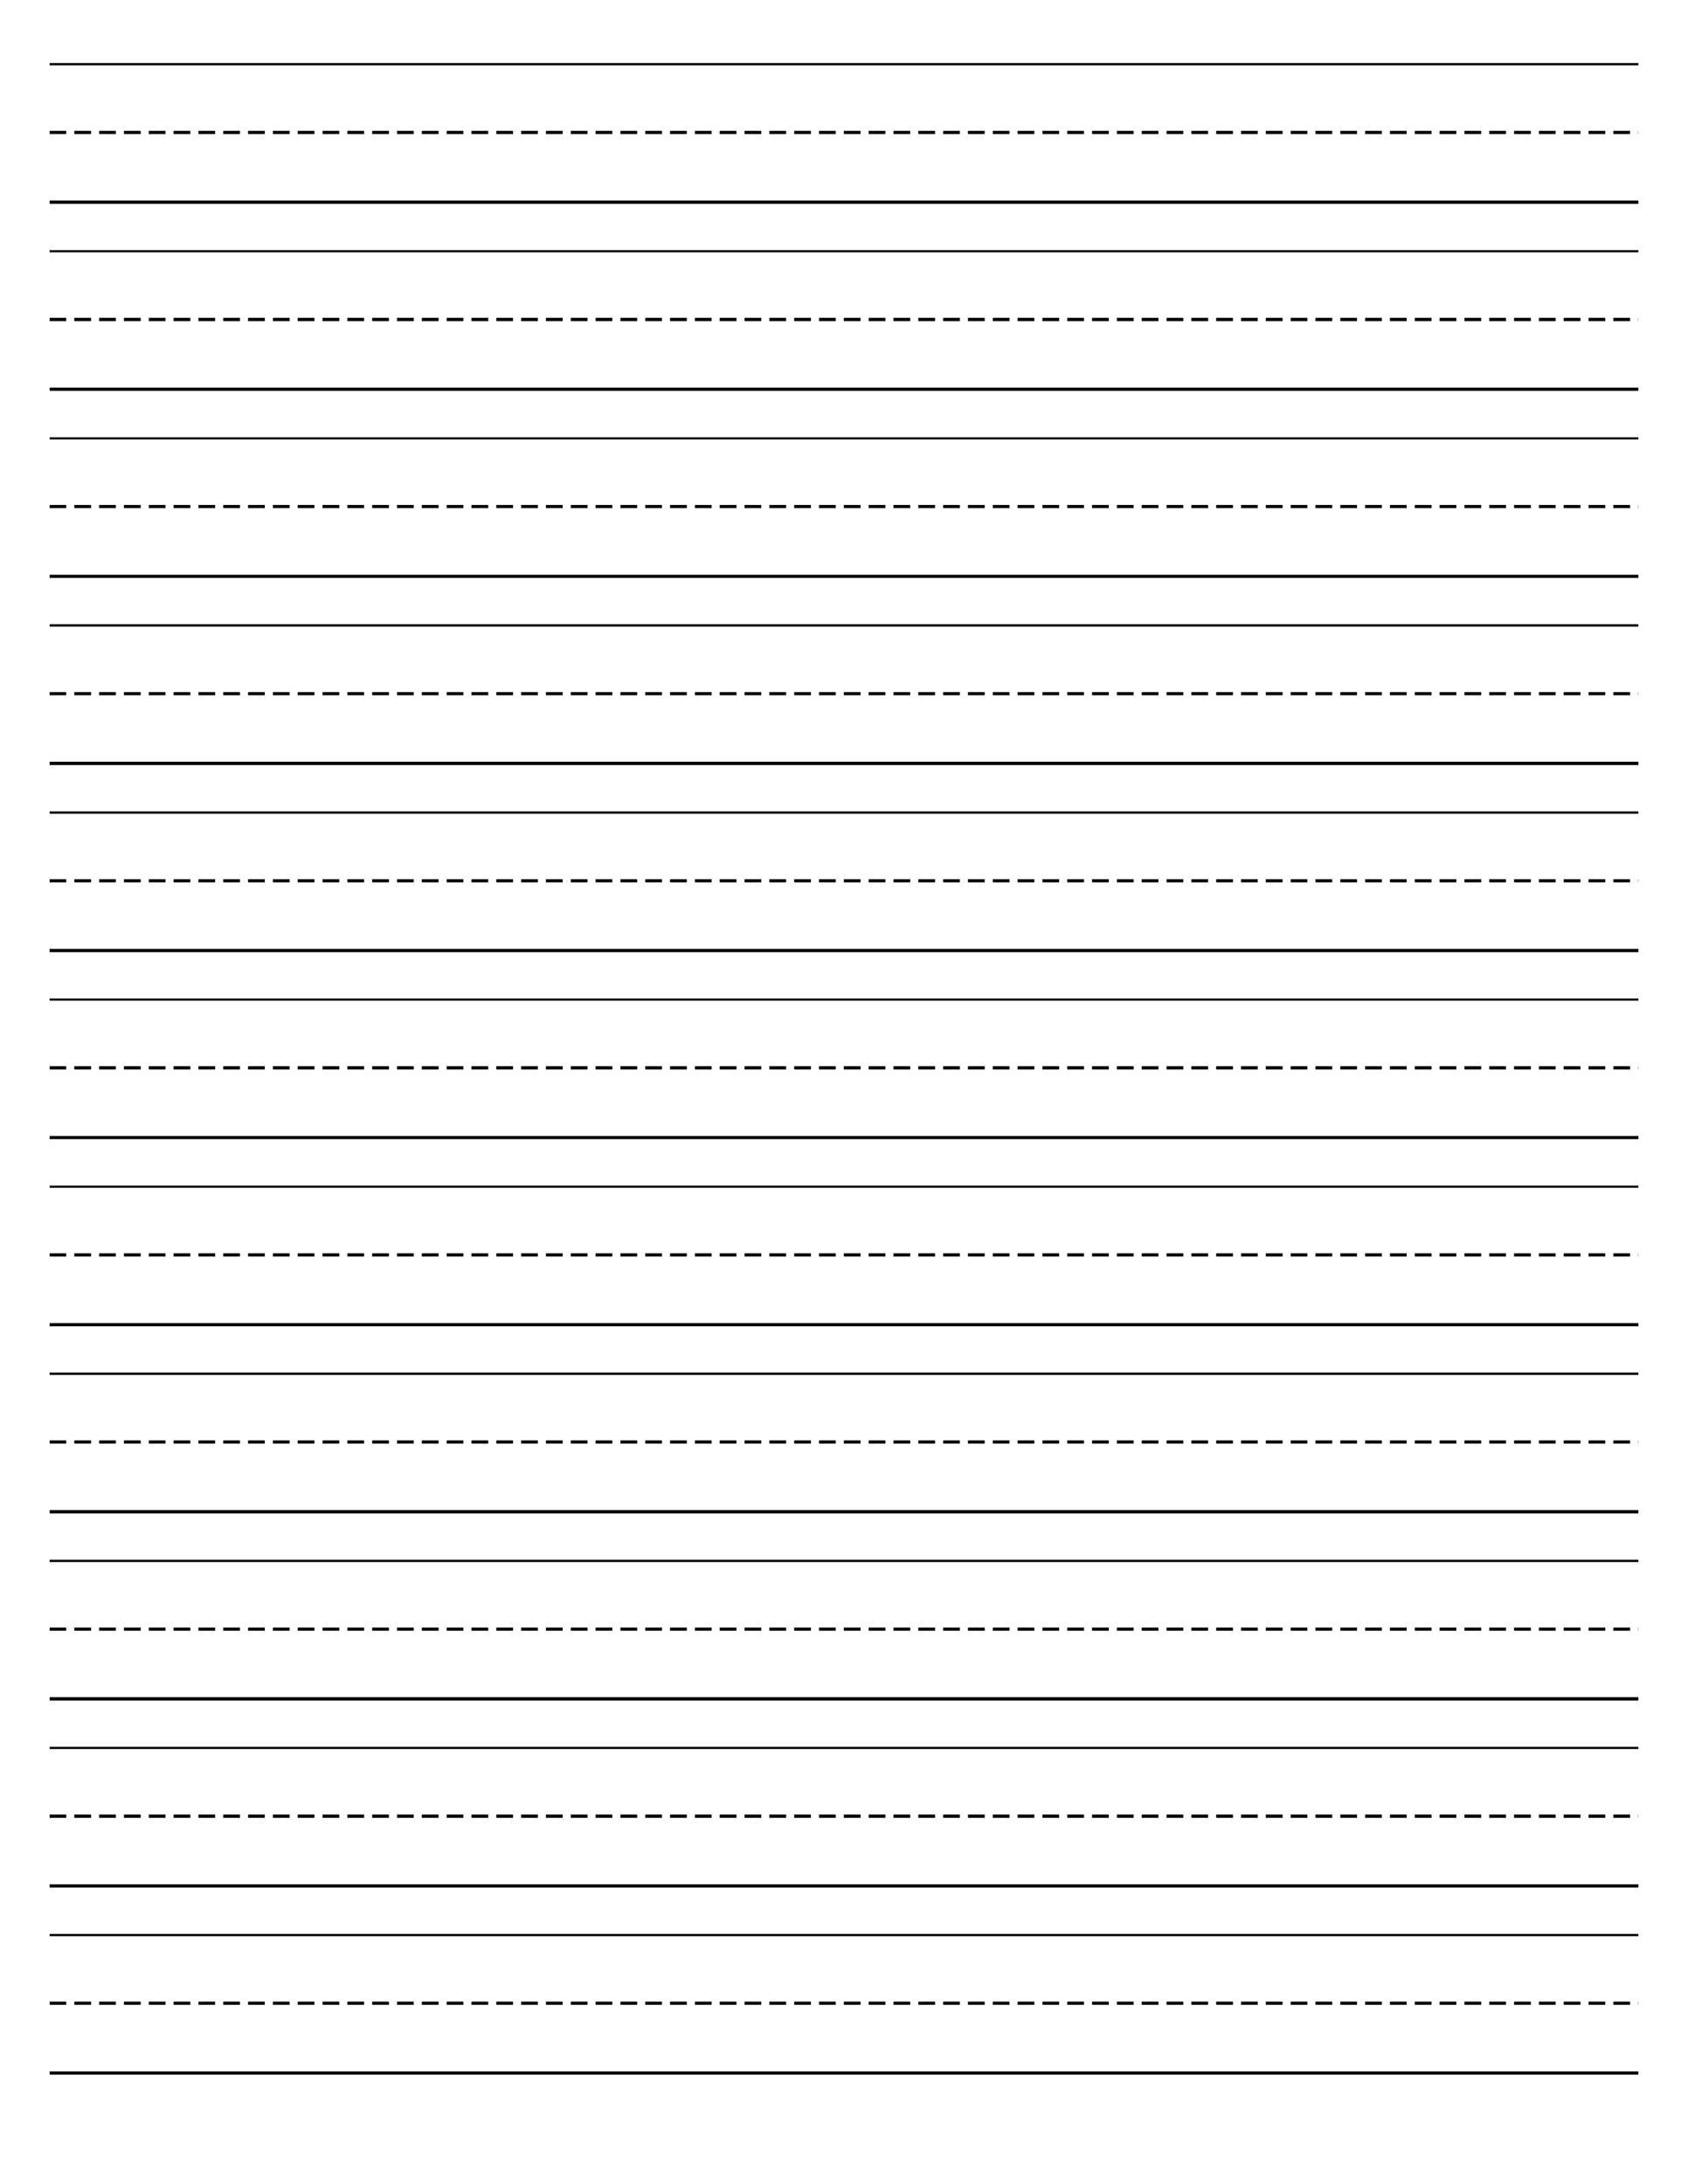 Free lined paper template 12